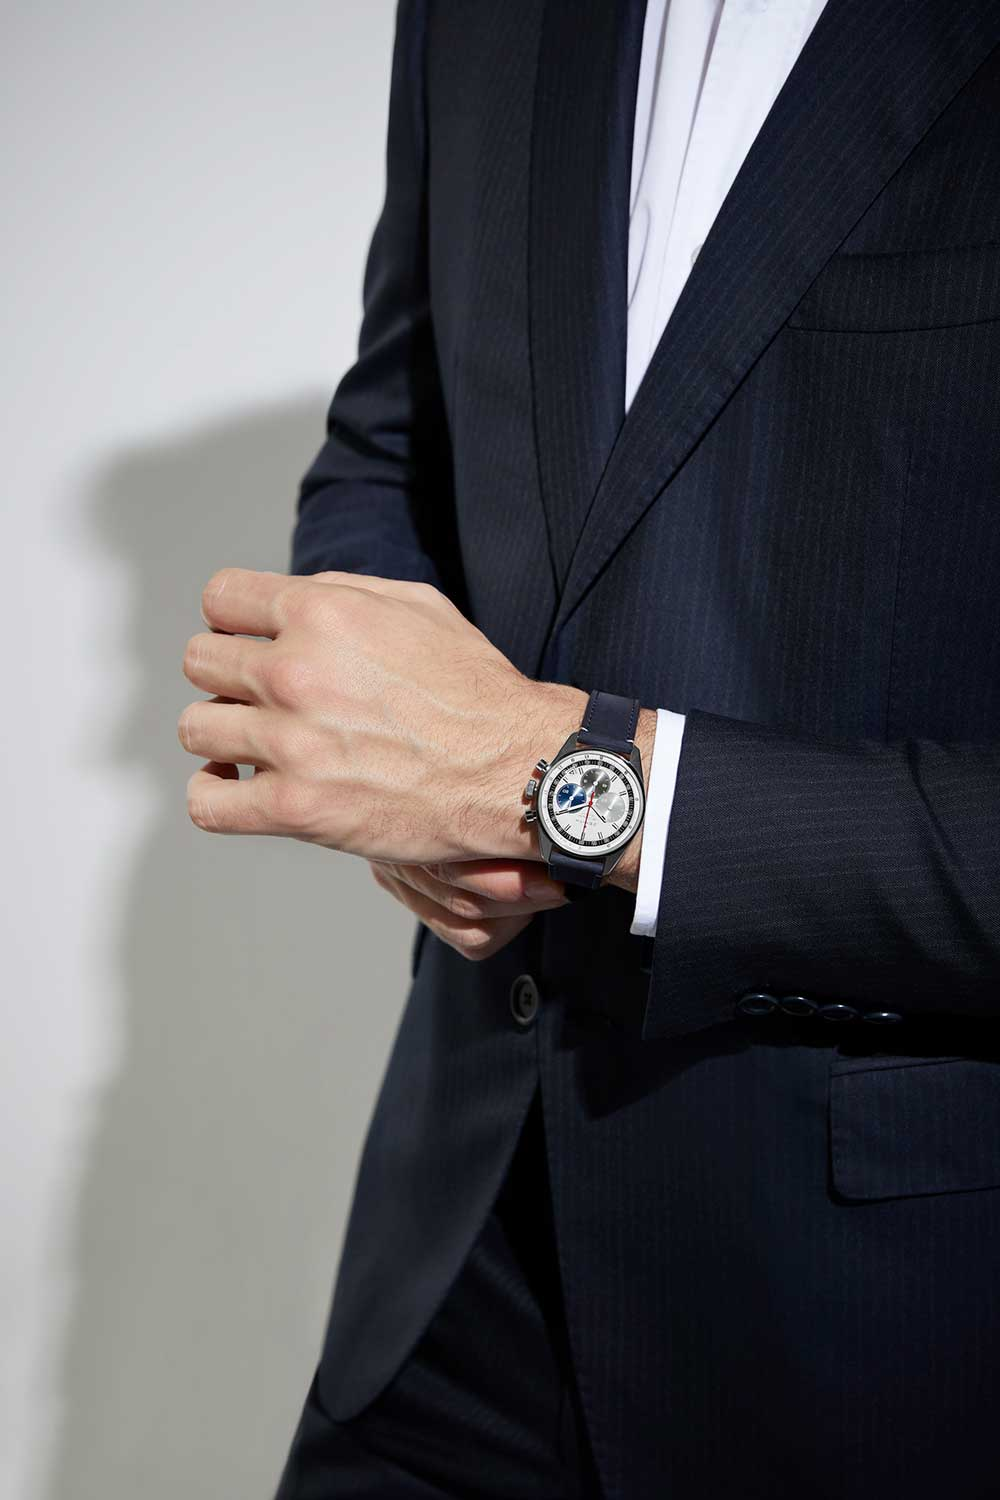 The Chronomaster Original is equipped with the El Primero 3600 that delivers a power reserve of 60 hours.